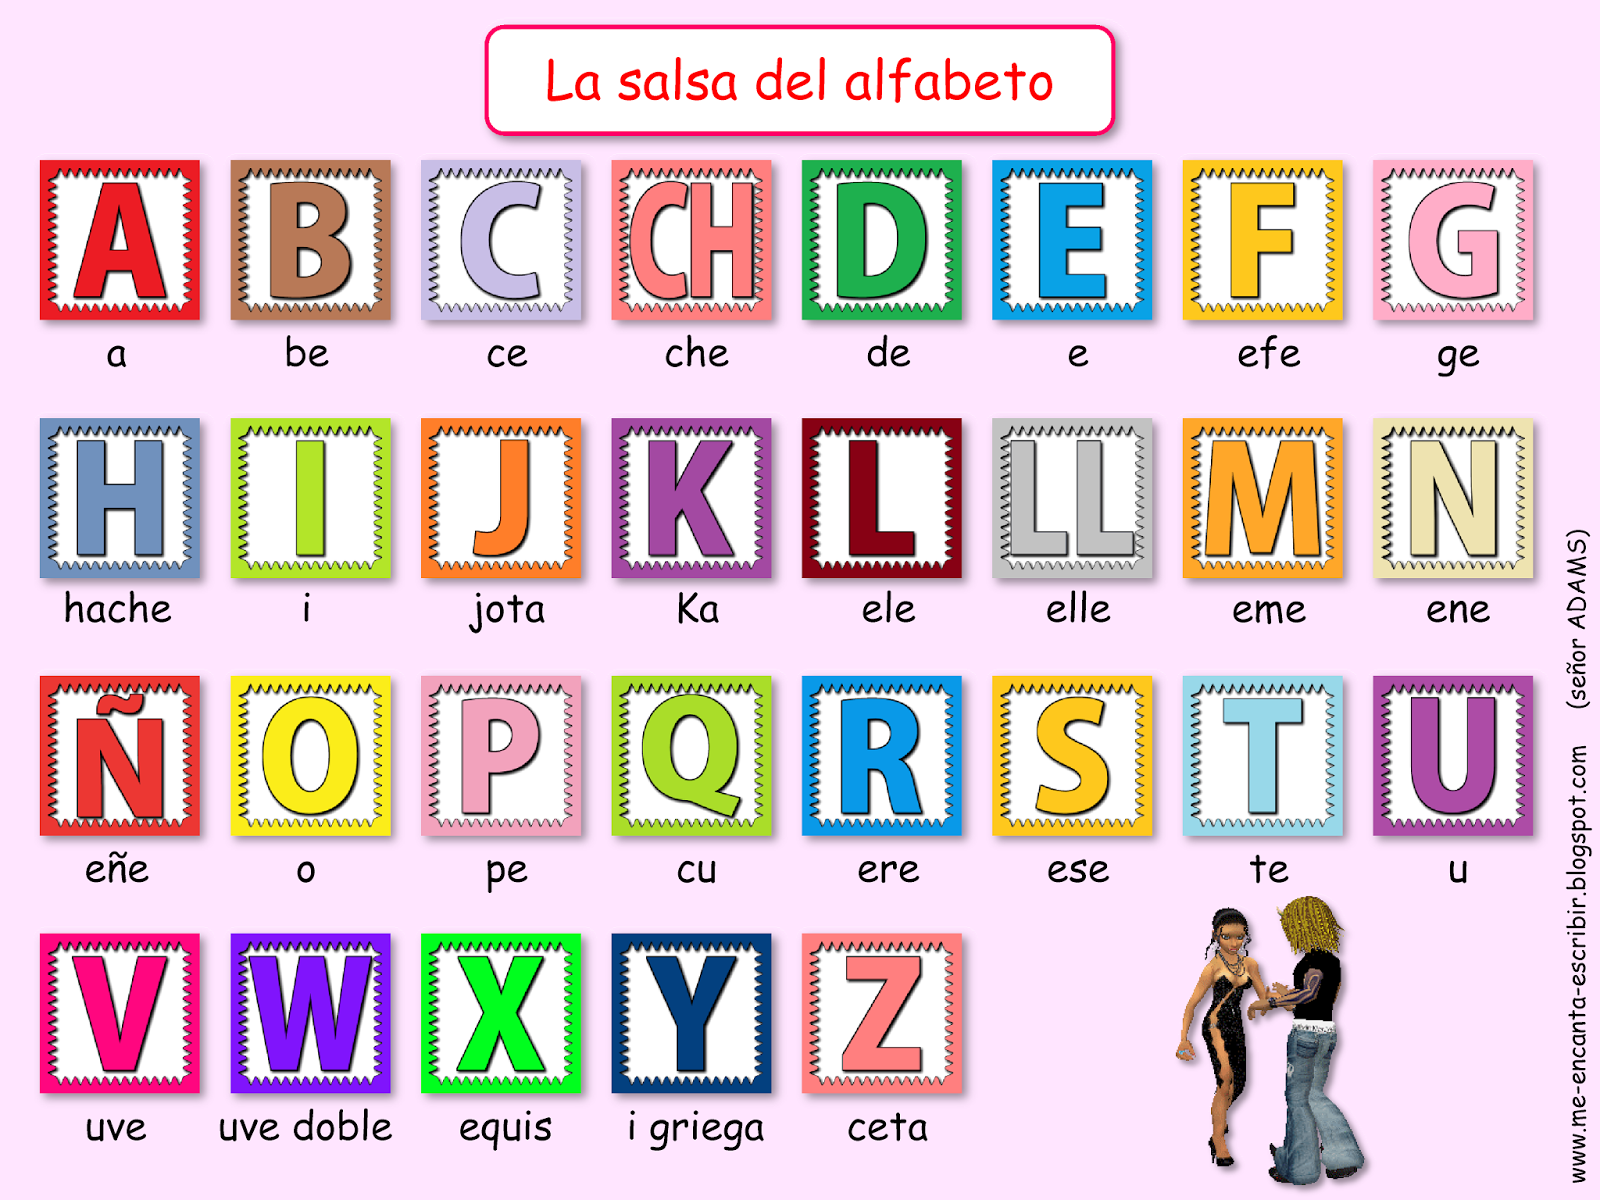 SONG La salsa de alfabeto Fun beat to learn the alphabet See